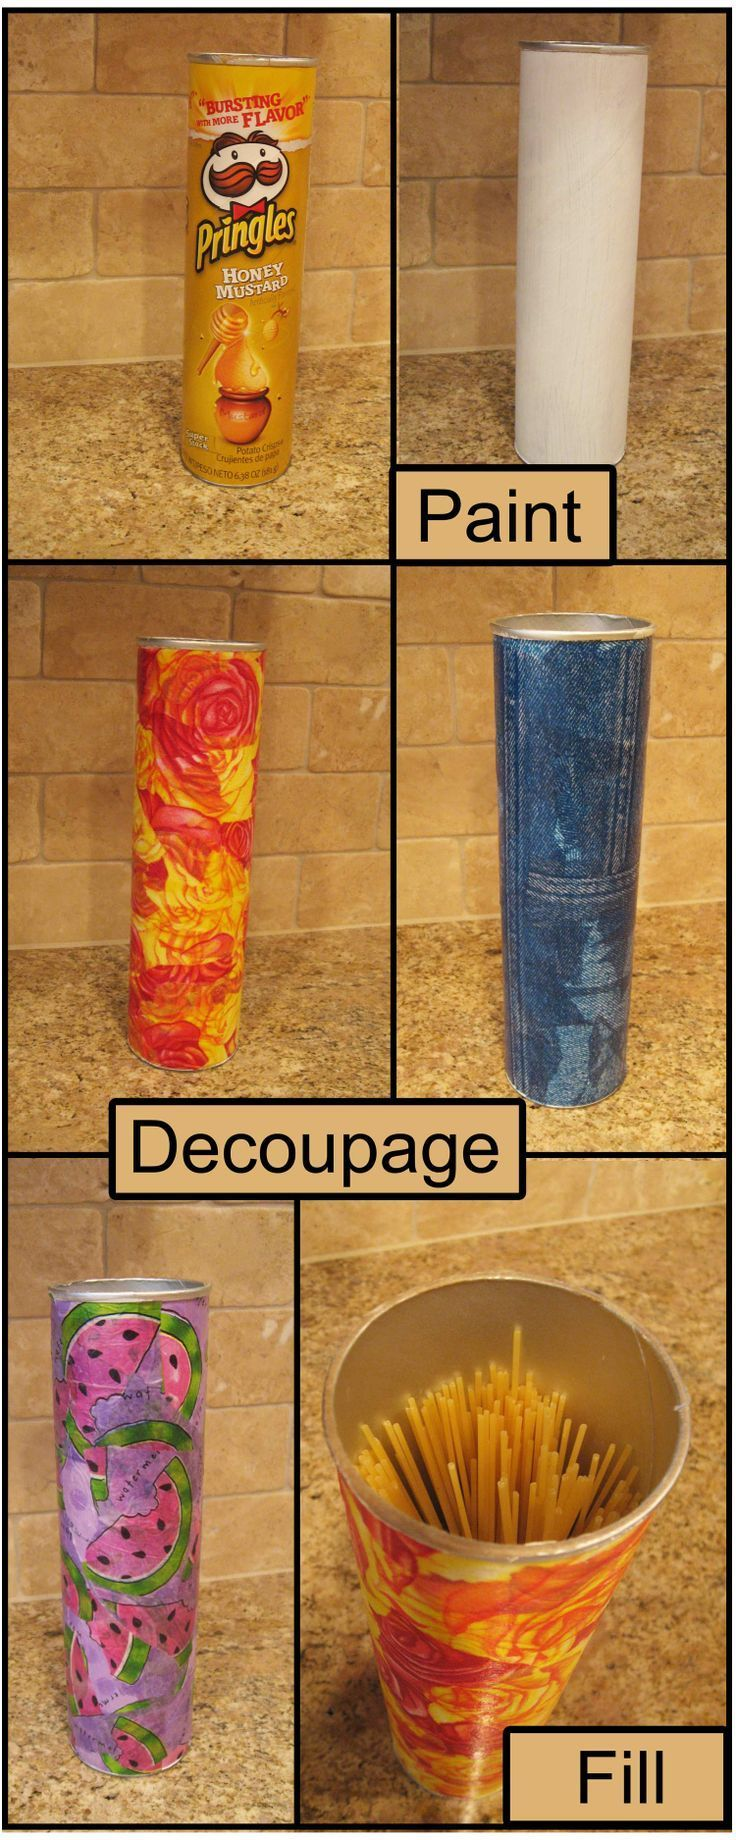 A Crafty Way to Recycle Your Pringles Tubes